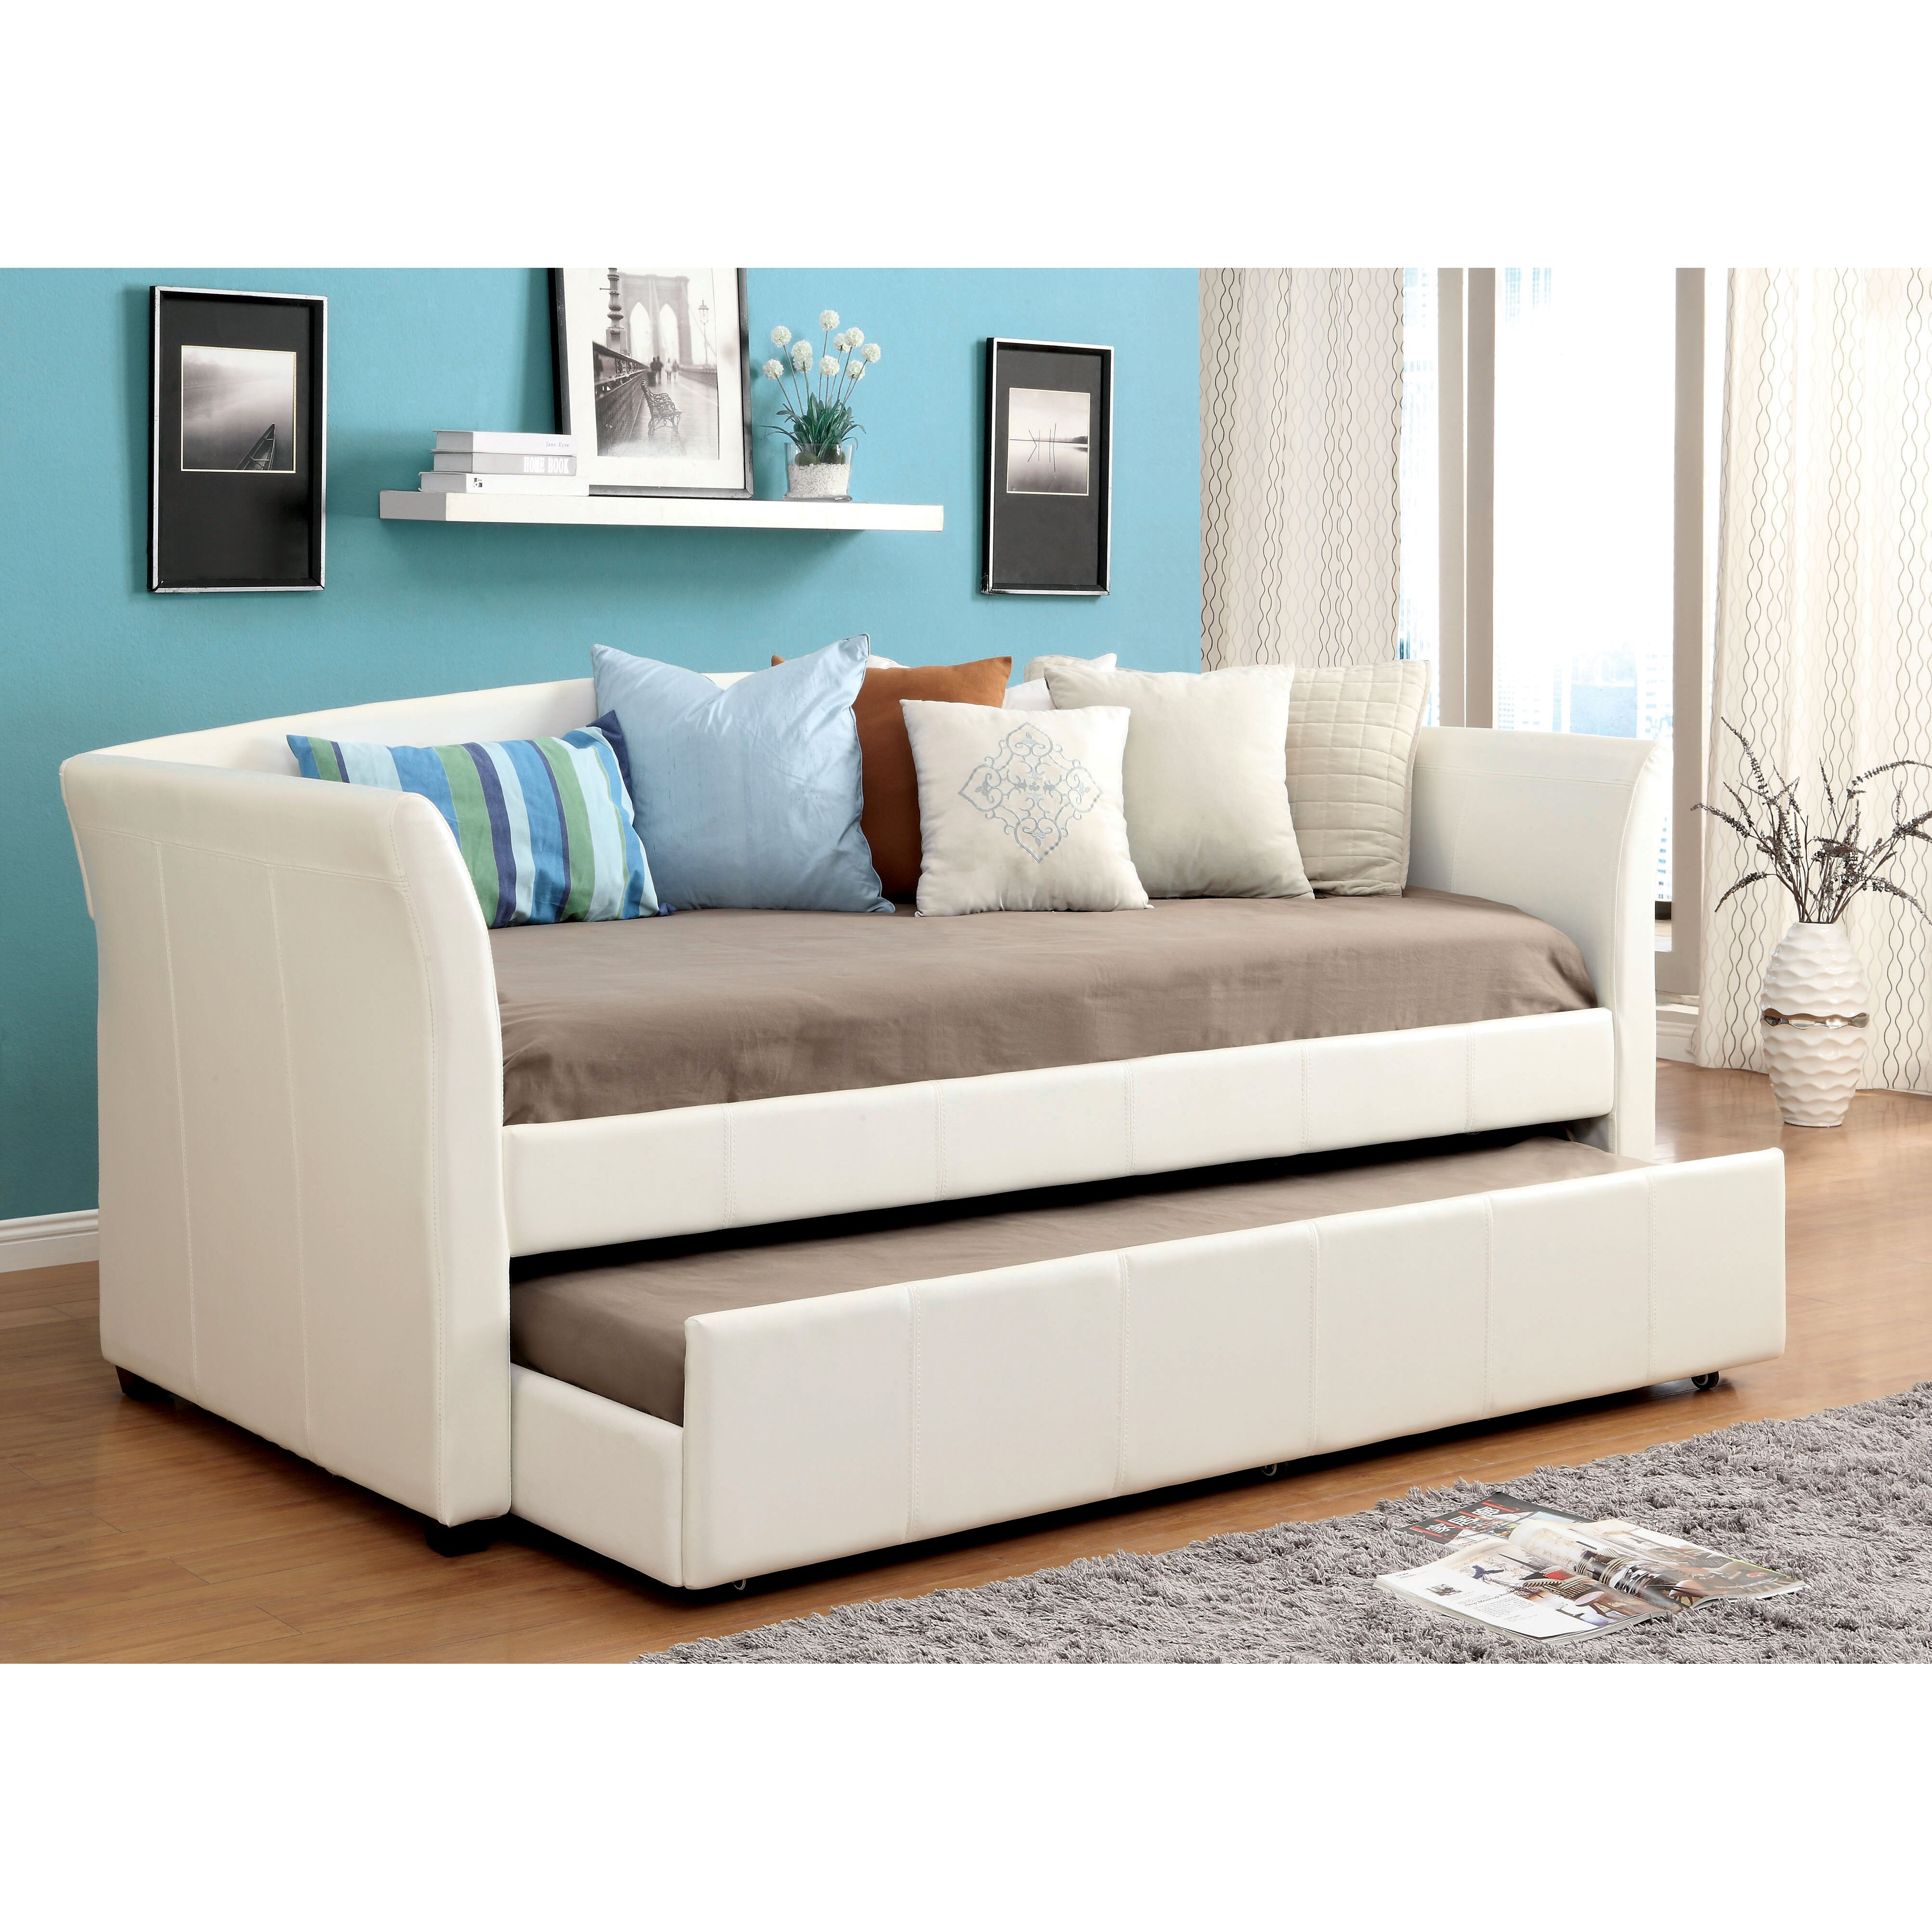 Hokku Designs Roma Daybed With Trundle Reviews Wayfair